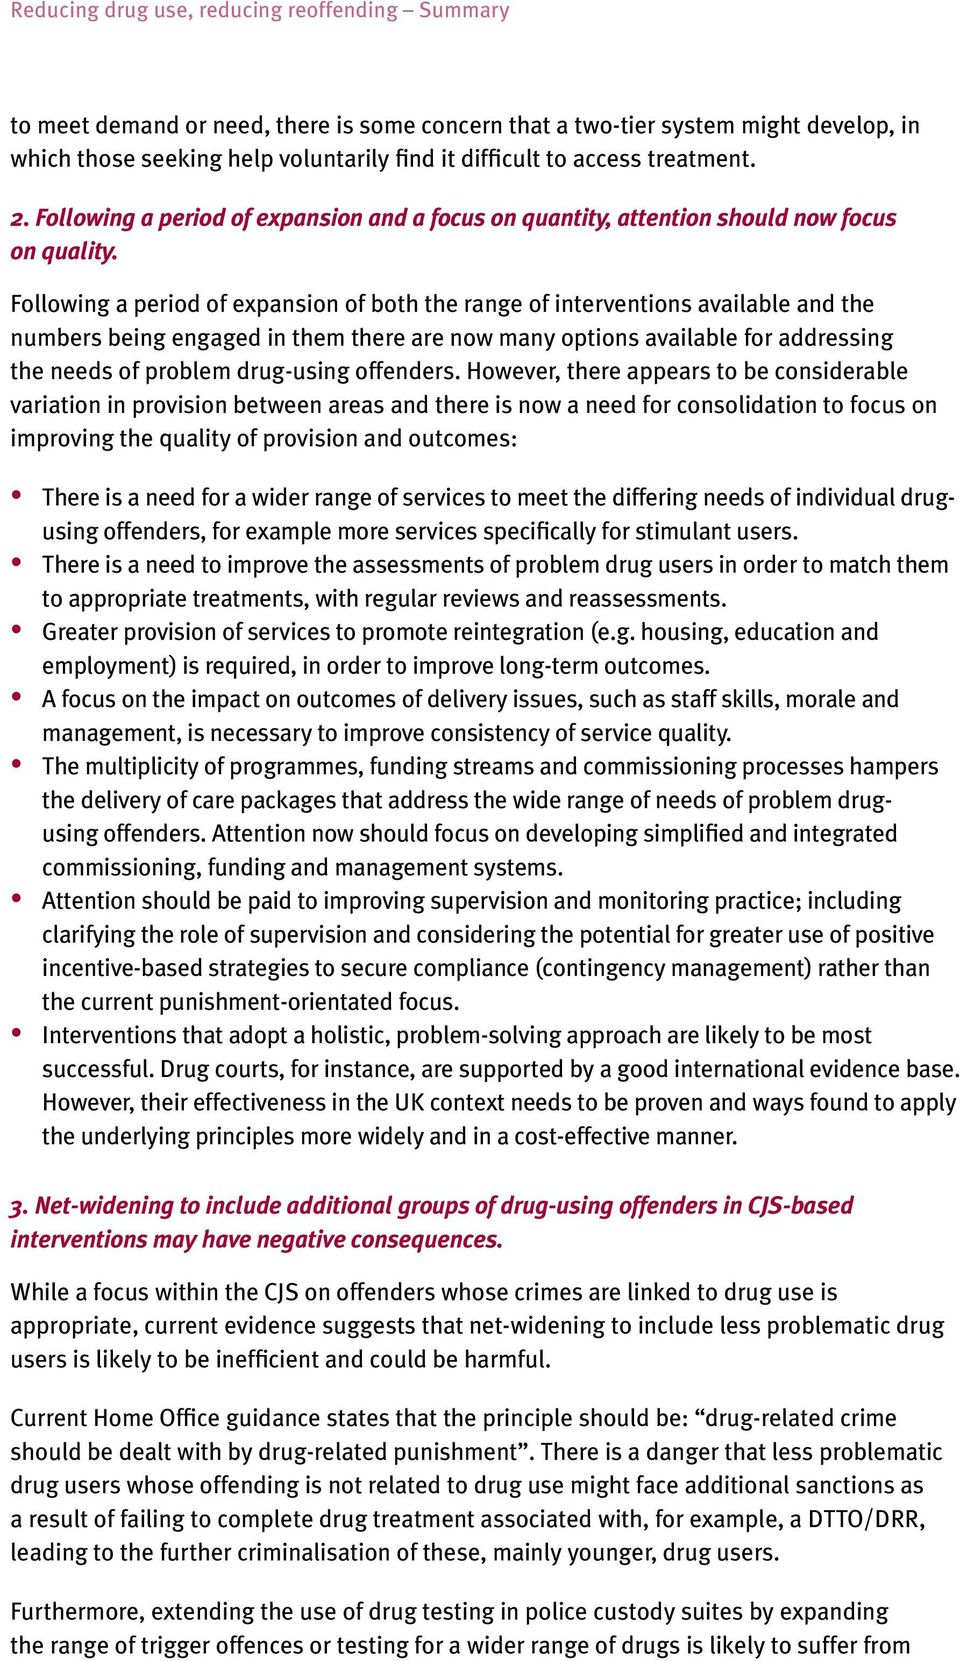 Following a period of expansion of both the range of interventions available and the numbers being engaged in them there are now many options available for addressing the needs of problem drug-using